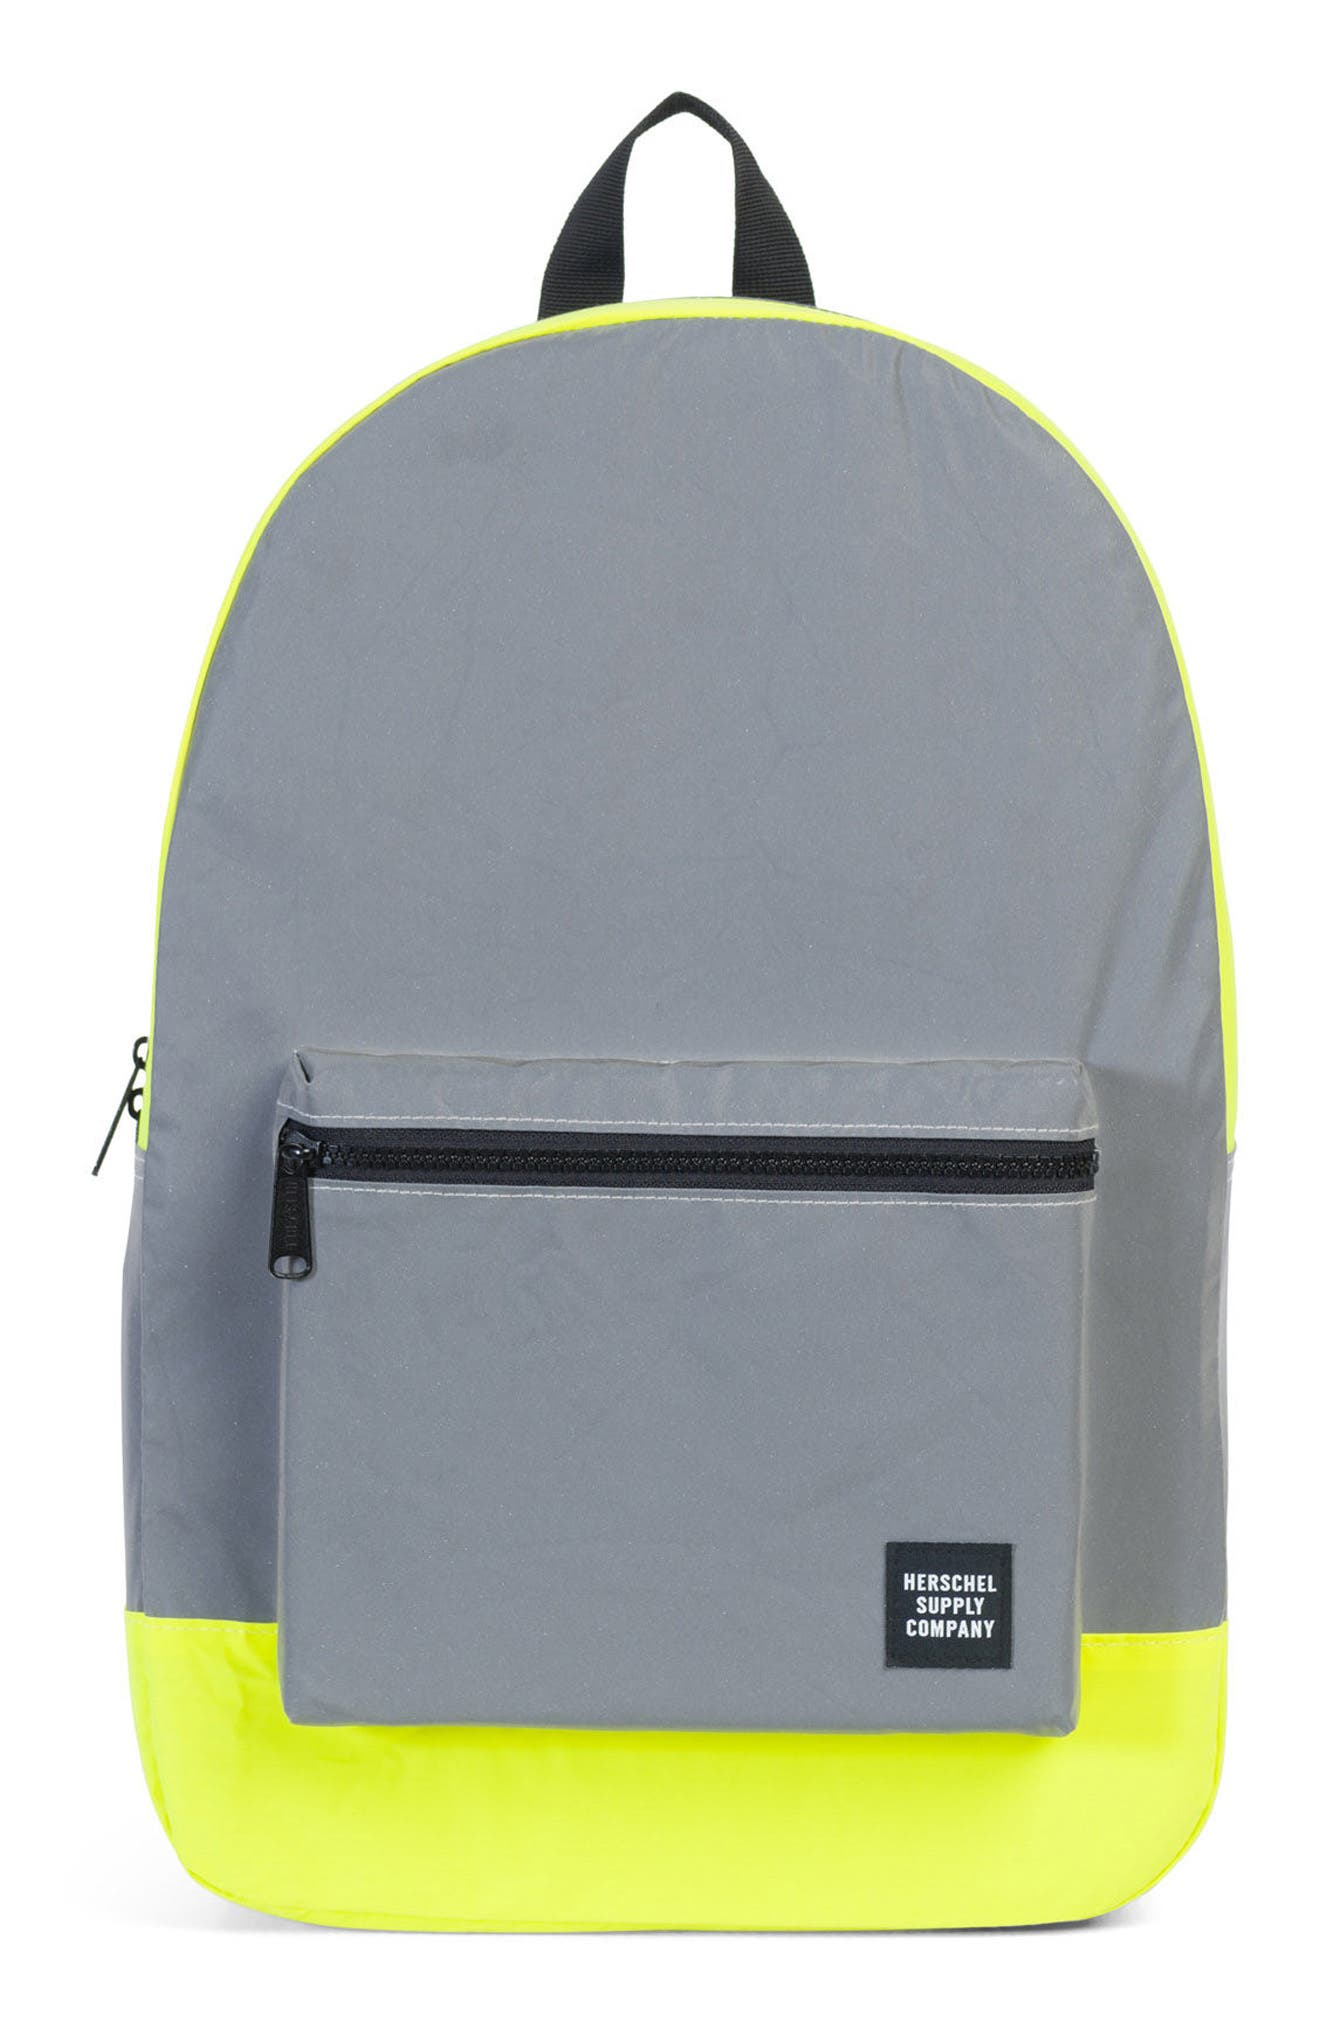 Herschell Supply Co. Packable Reflective Backpack